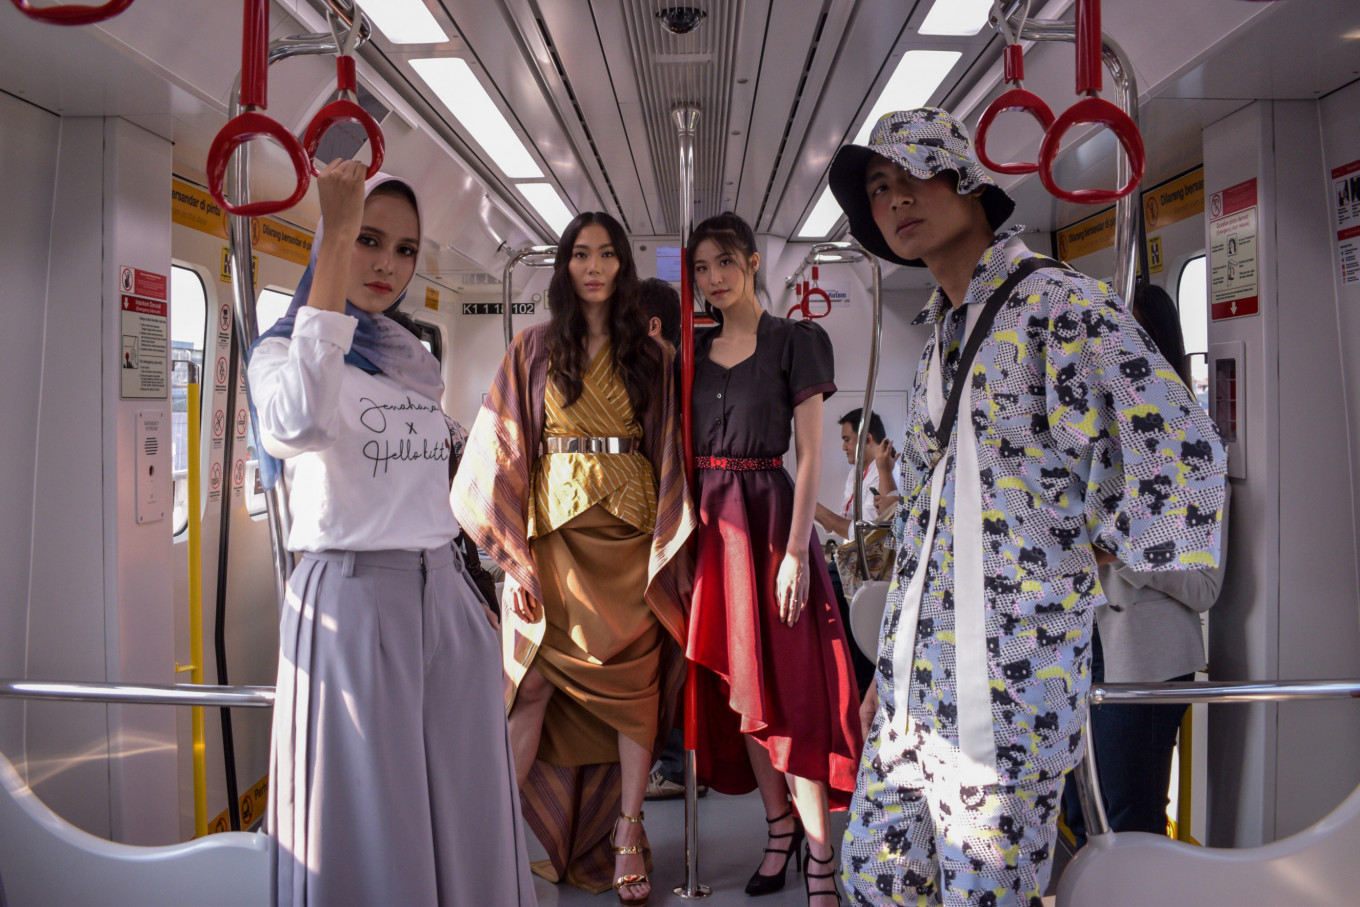 Models wearing outfits from Jenahara (left), Eridani (second left), Cynthia Tan (second right) and AMOTSYAMSURIMUDA (right) during the Fashion Preview inside an LRT Jakarta train. The event was held  as part of the Jakarta Fashion & Food Festival on Aug. 13.